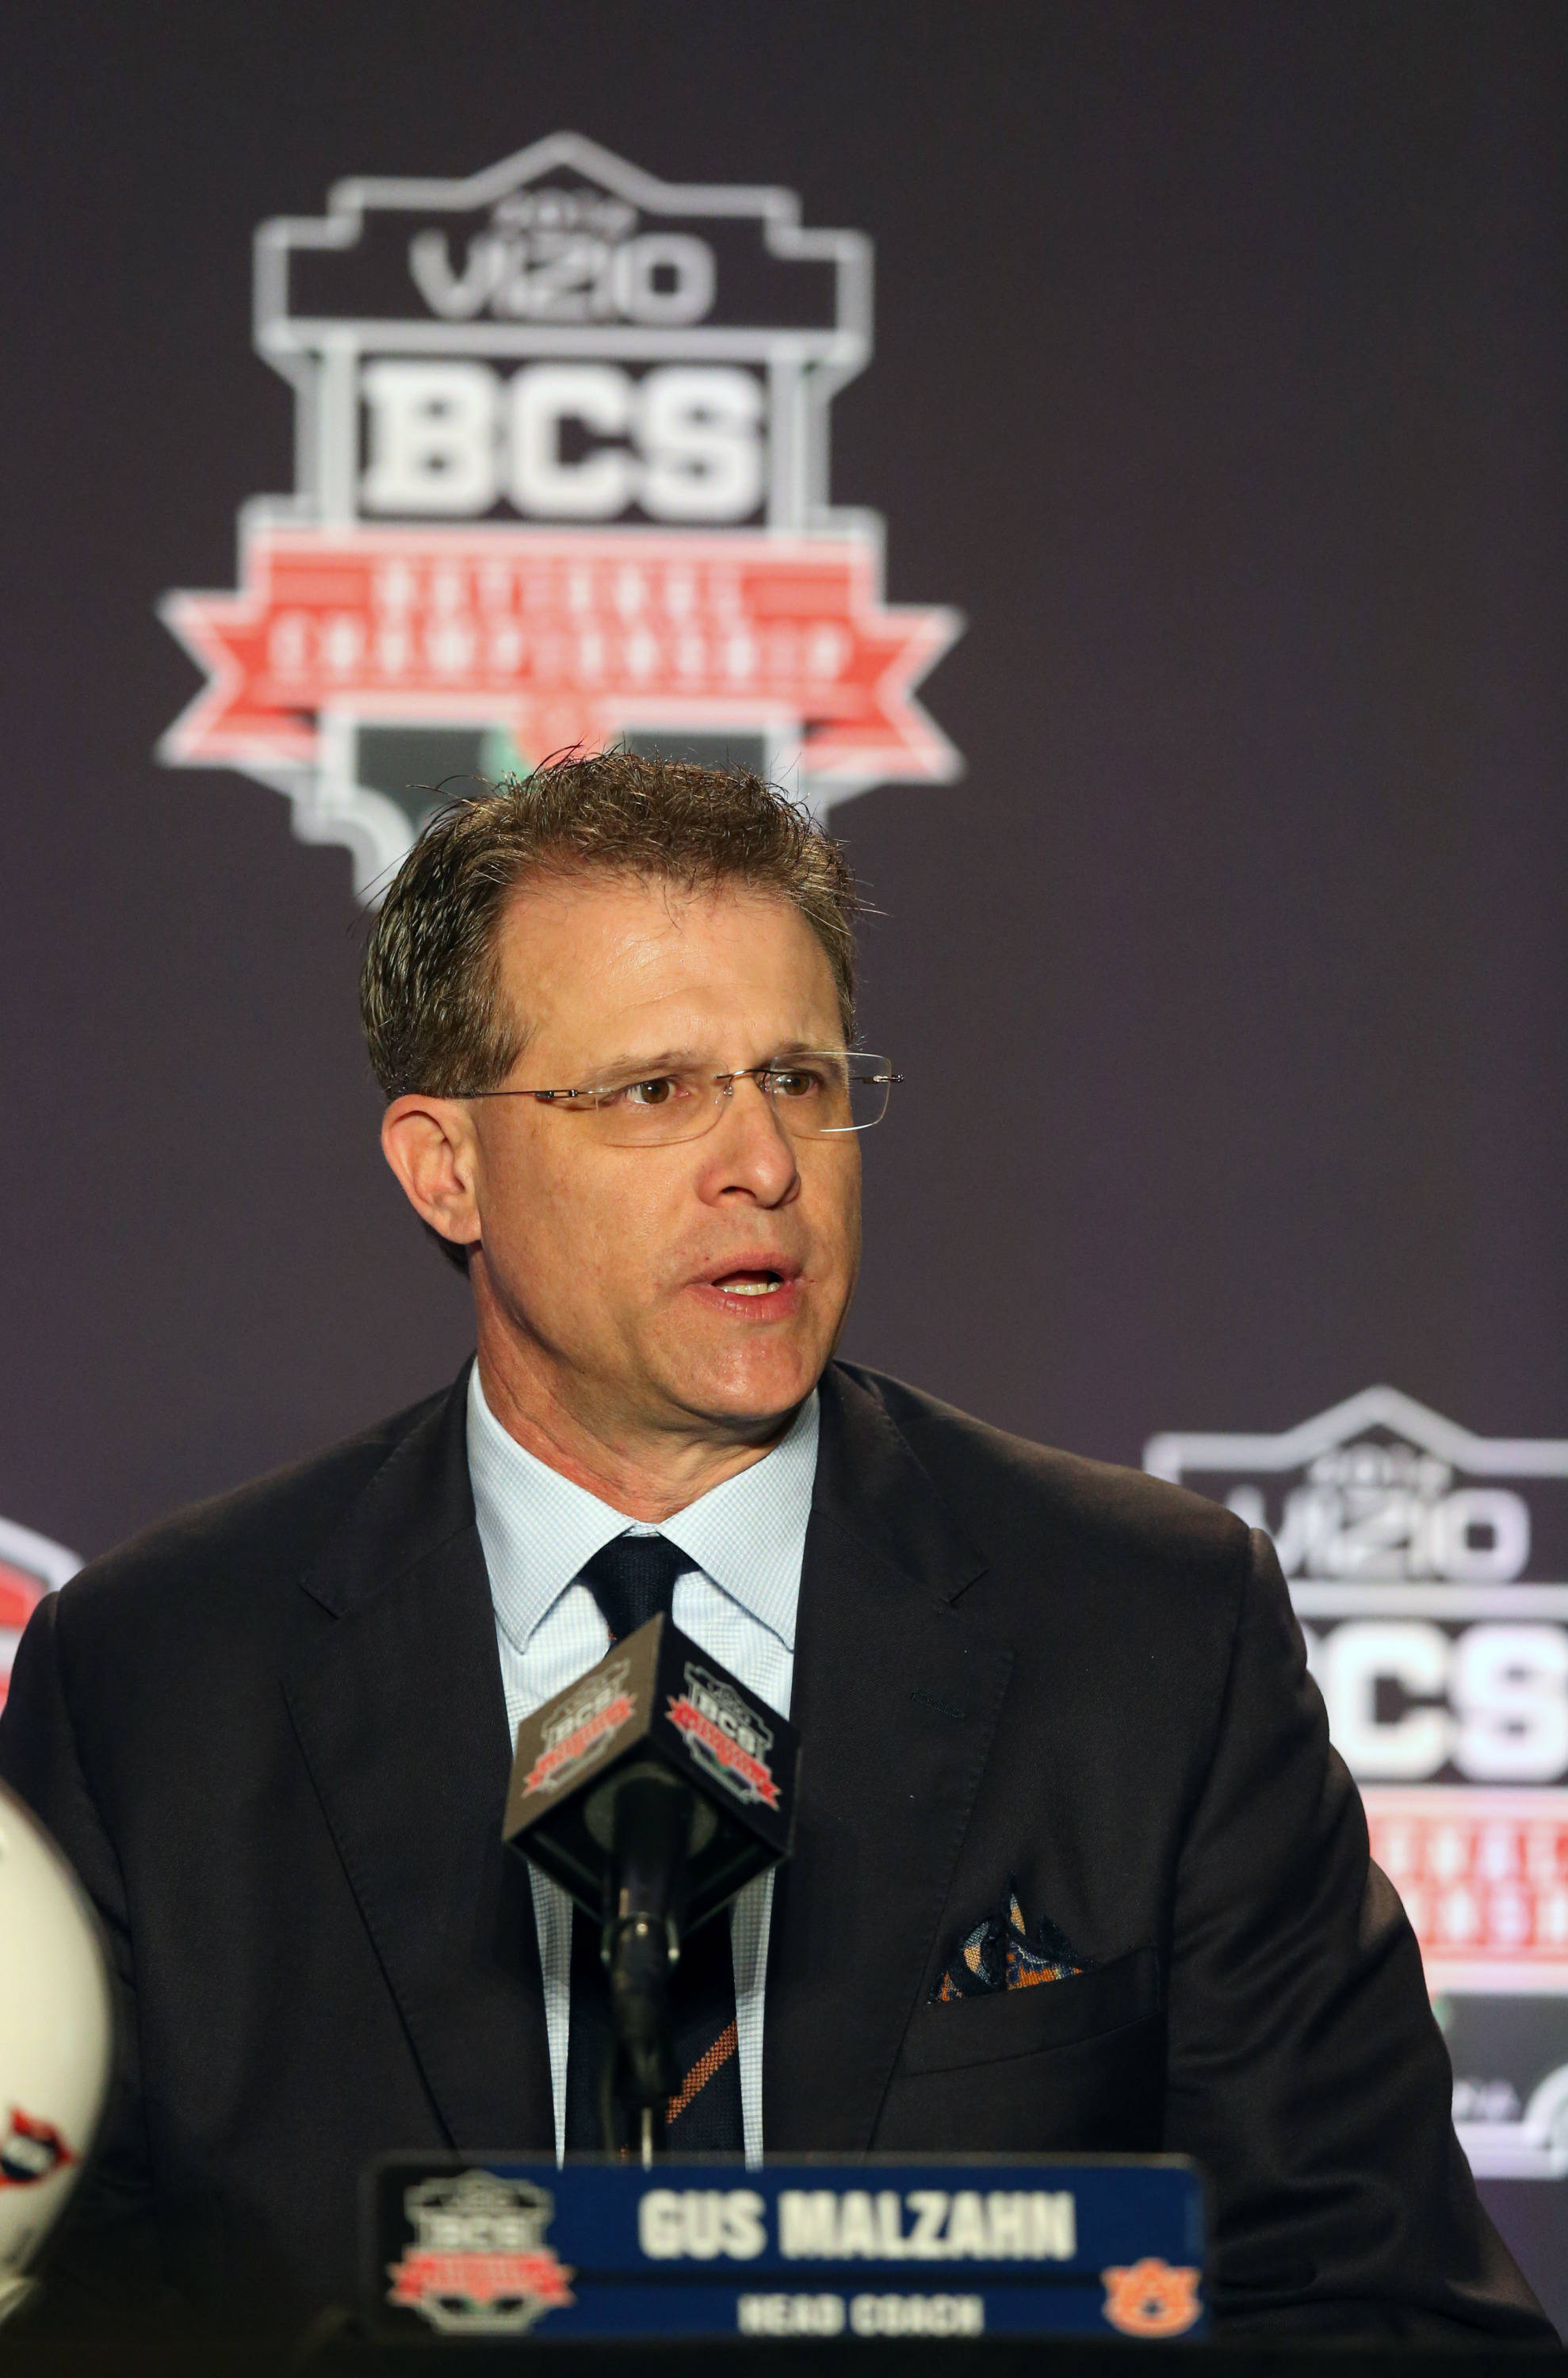 Jan 5, 2014; Los Angeles, CA, USA; Auburn Tigers head coach Gus Malzahn answers questions during a press conference at Newport Beach Marriott. Mandatory Credit: Matthew Emmons-USA TODAY Sports